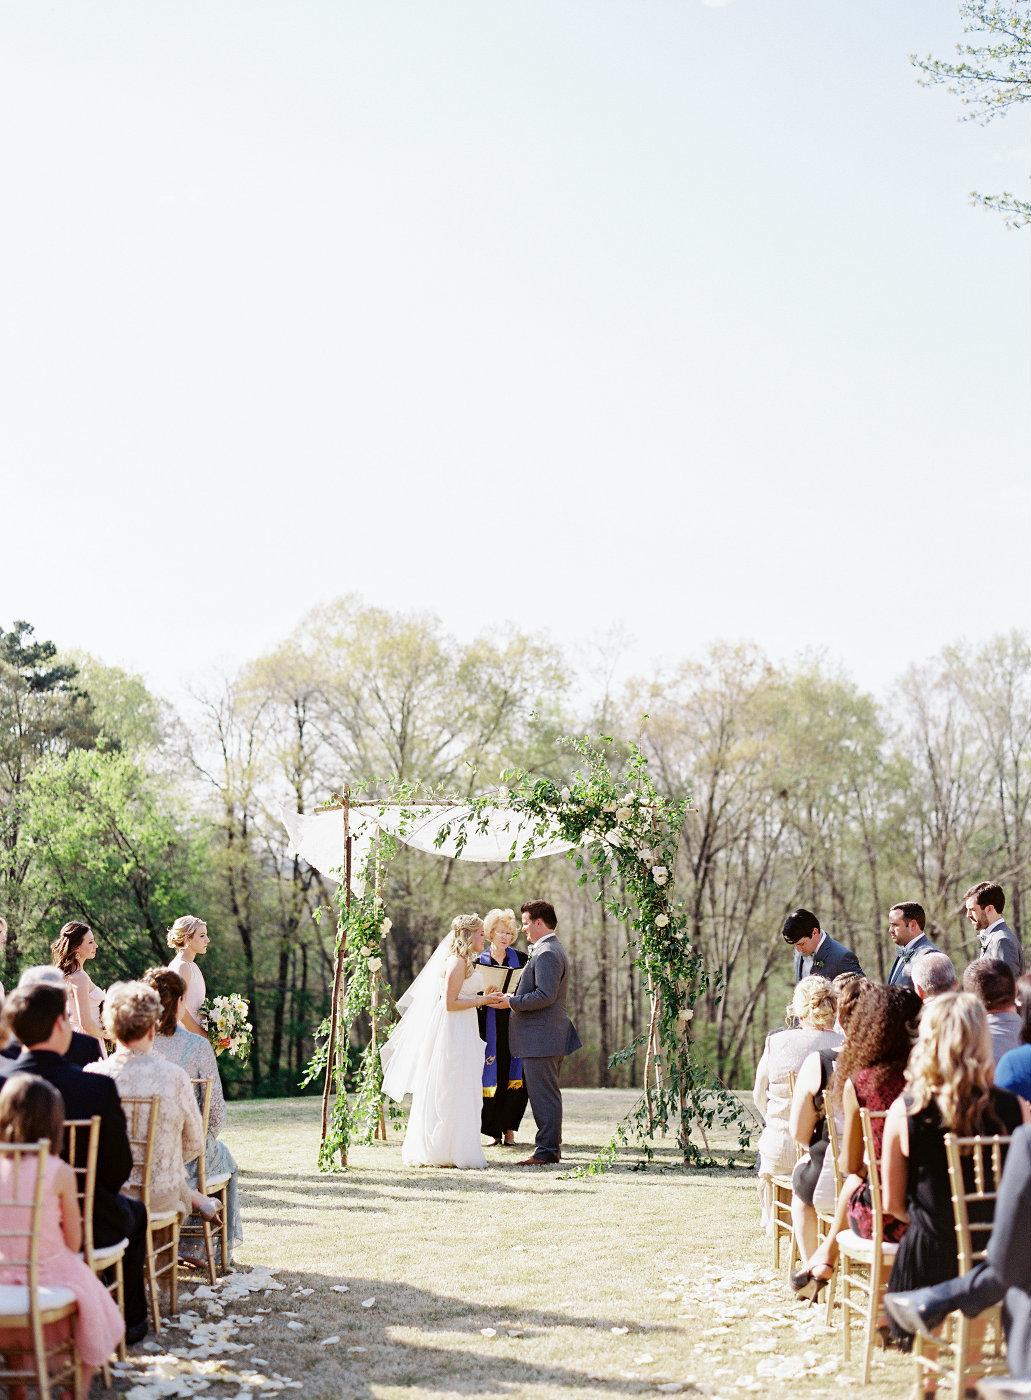 chateau_elan_wedding_amy_osaba_melanie_gabrielle_photography_041